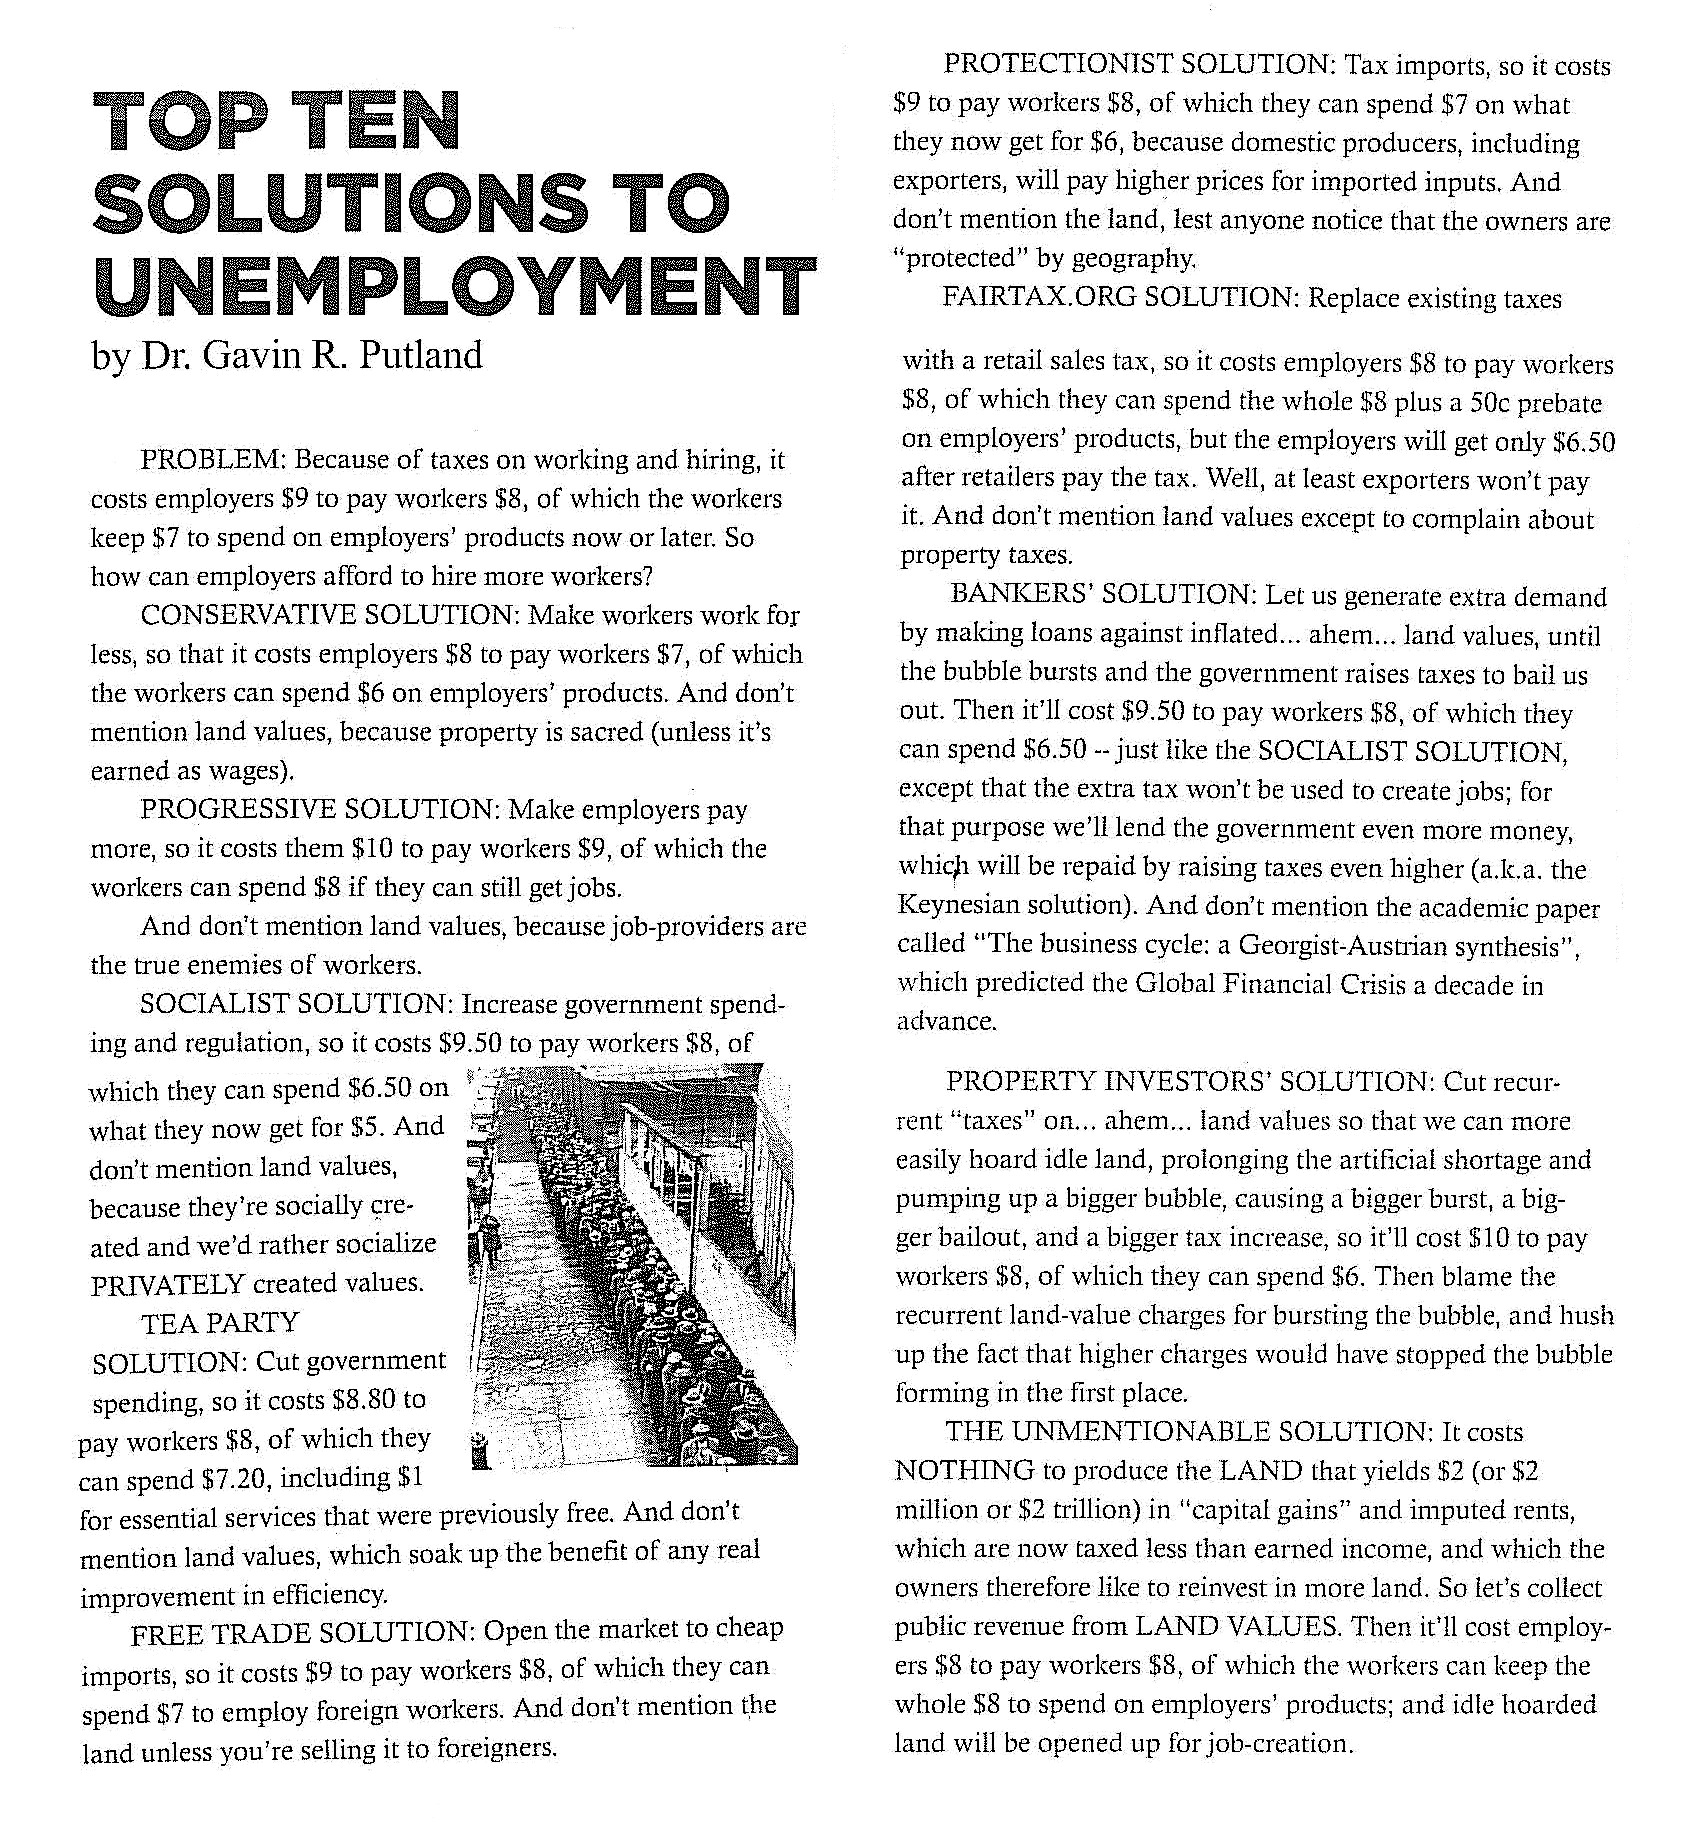 putland-top-ten-solutions-to-unemployment-2011